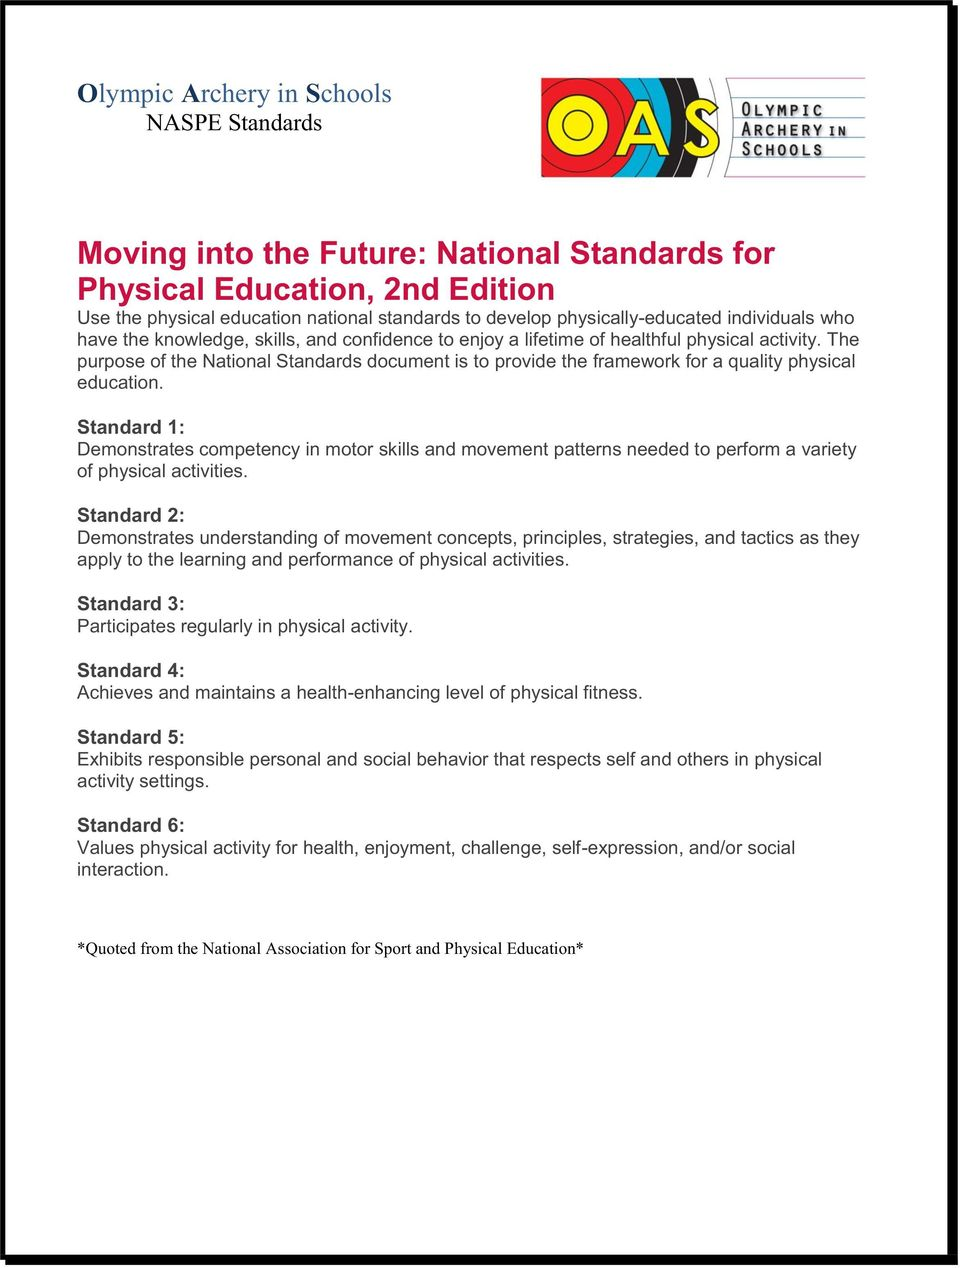 The purpose of the National Standards document is to provide the framework for a quality physical education.